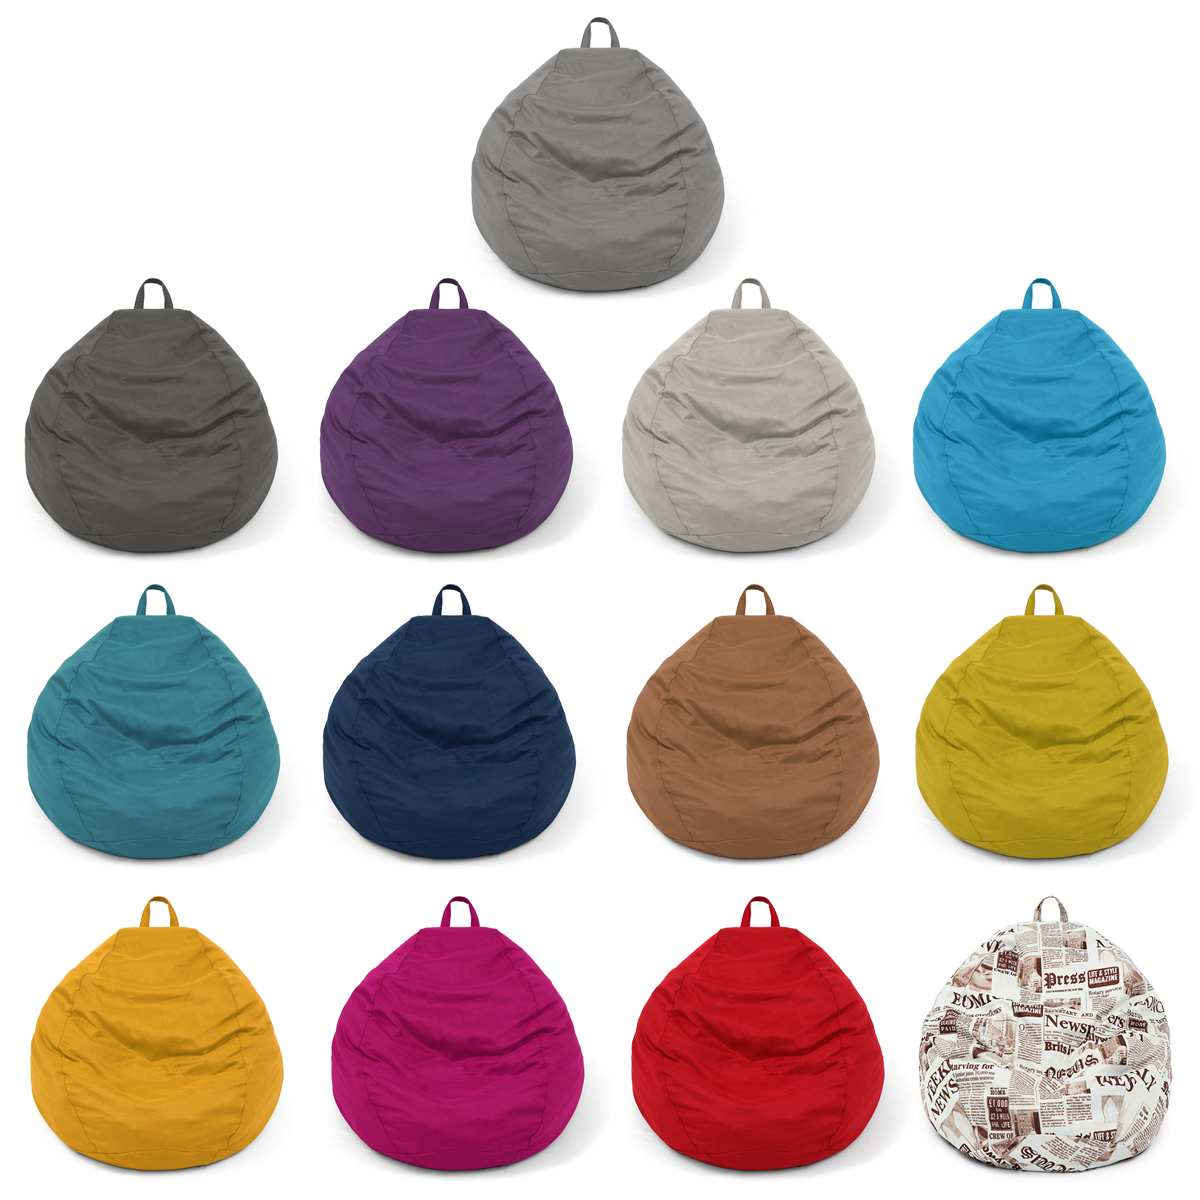 Large Small Lazy BeanBag Sofas Cover Chairs Without Filler Lounger Seat Bean Bag Pouf Puff Couch Tatami Living Room